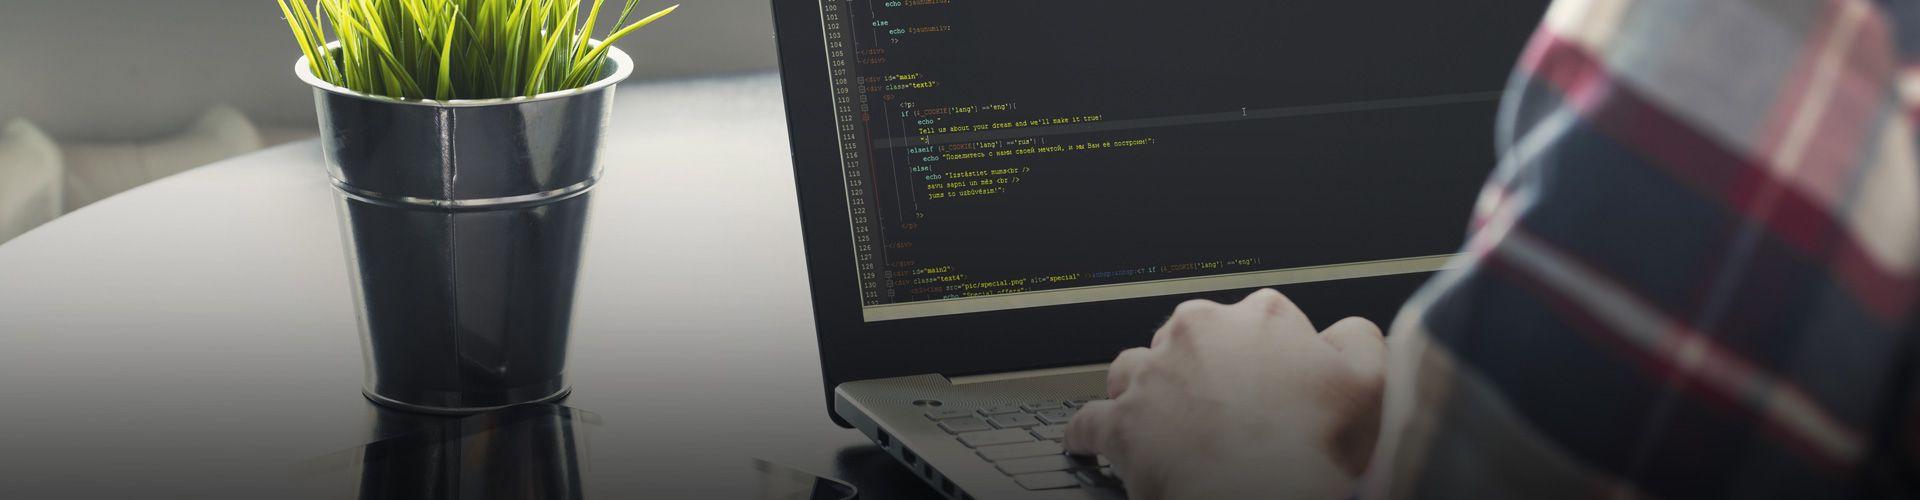 Programmer working at his laptop with solutions that help increase his productivity